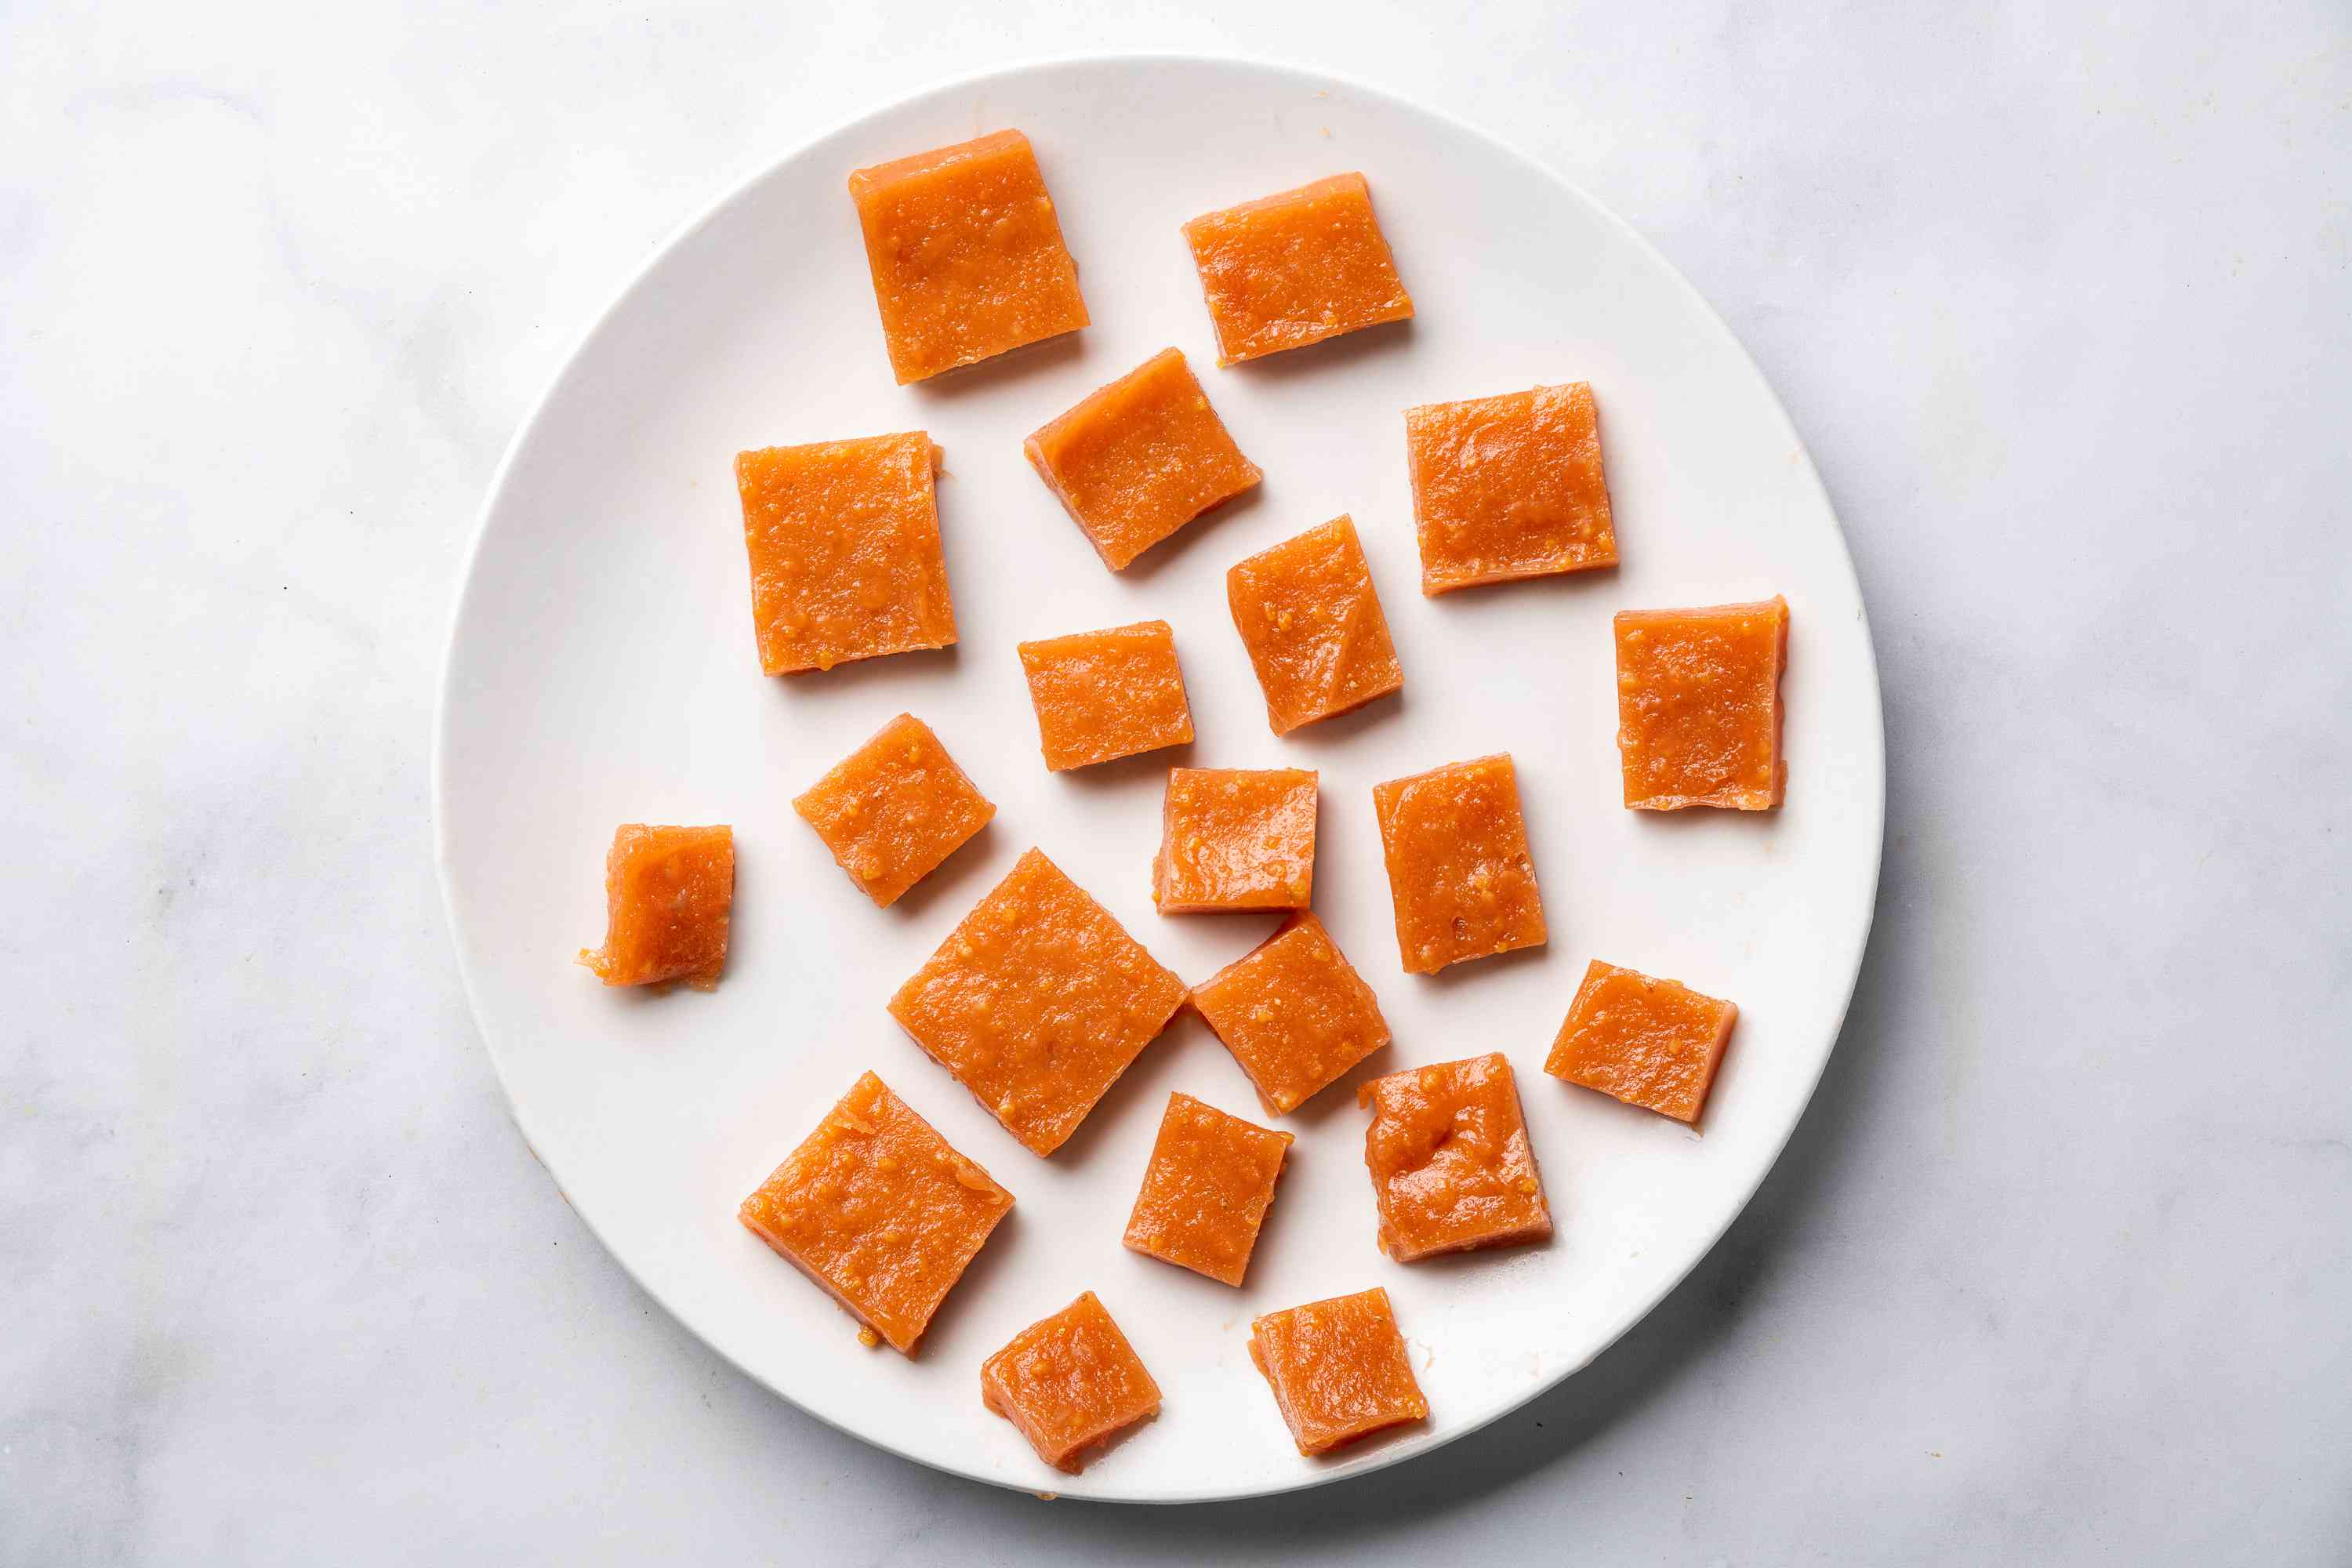 Indian Guava Cheese pieces on a plate